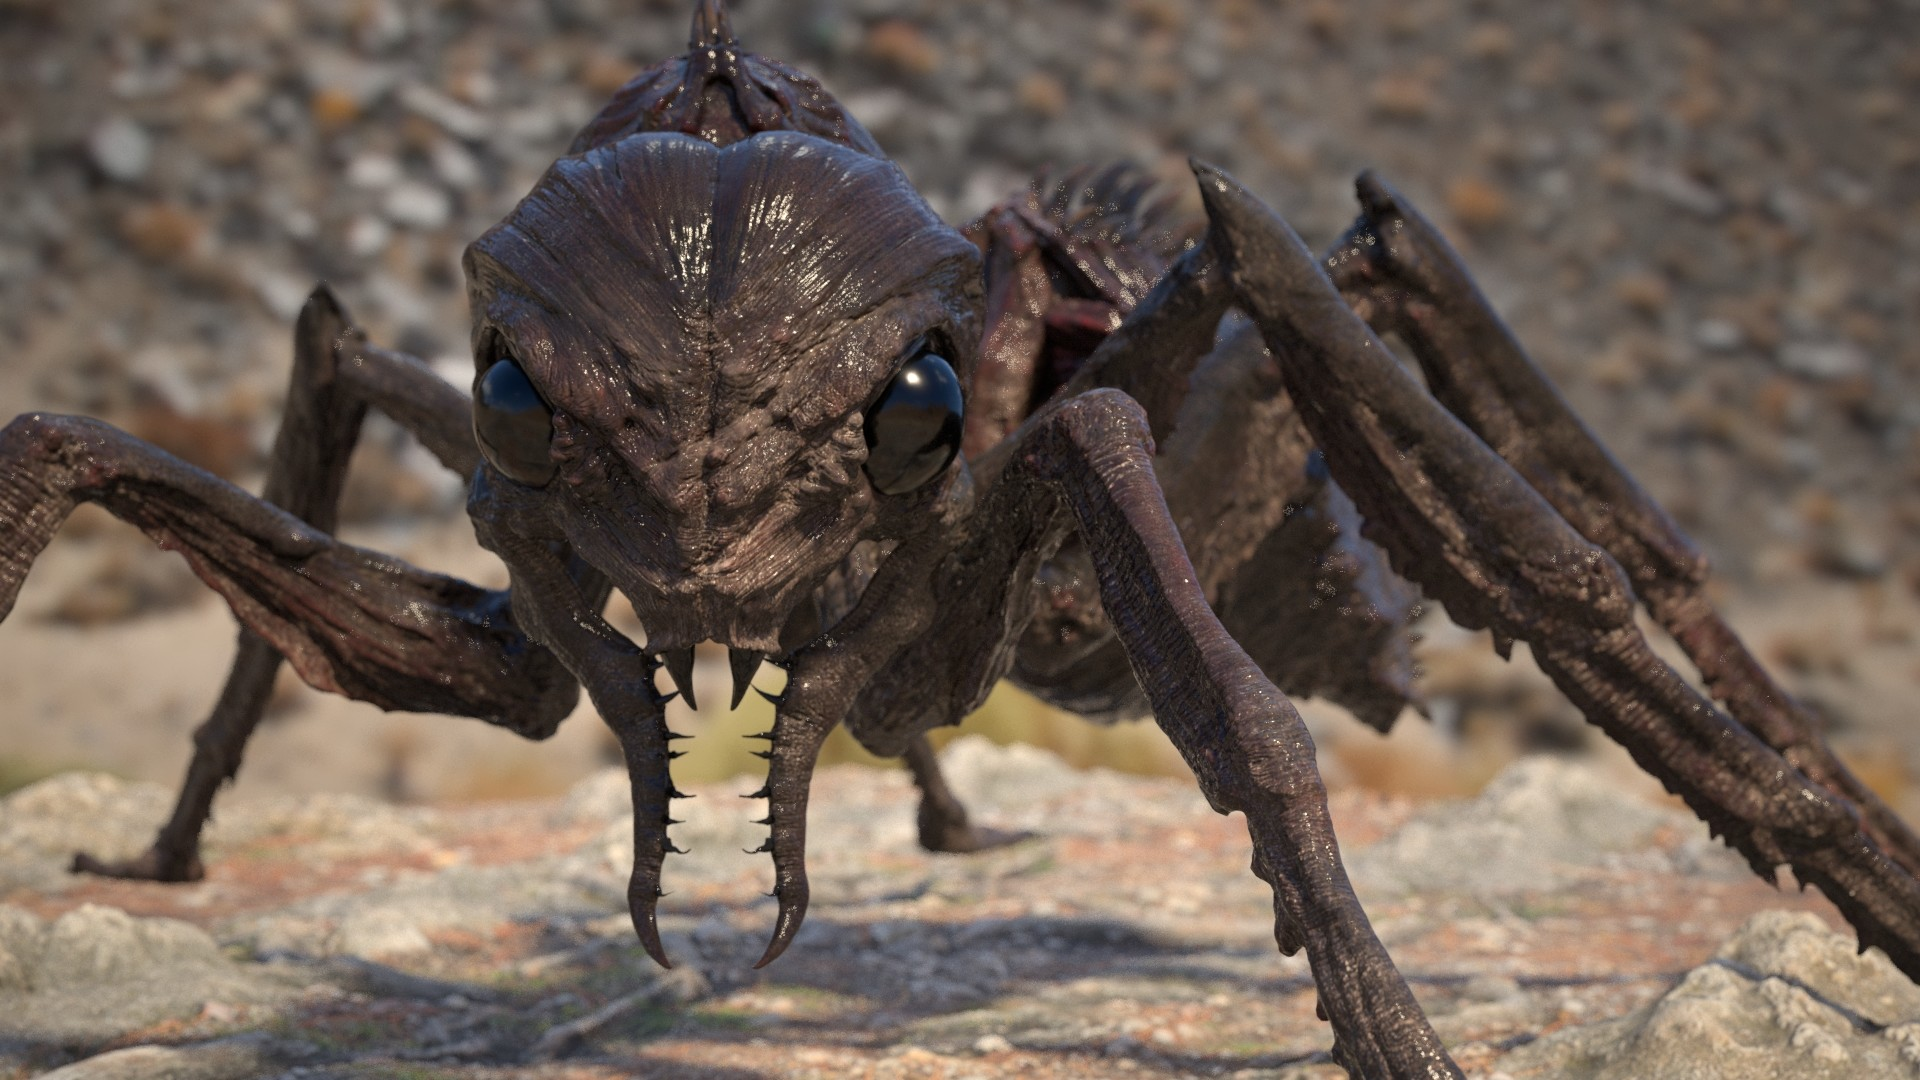 Ant Drone Monster